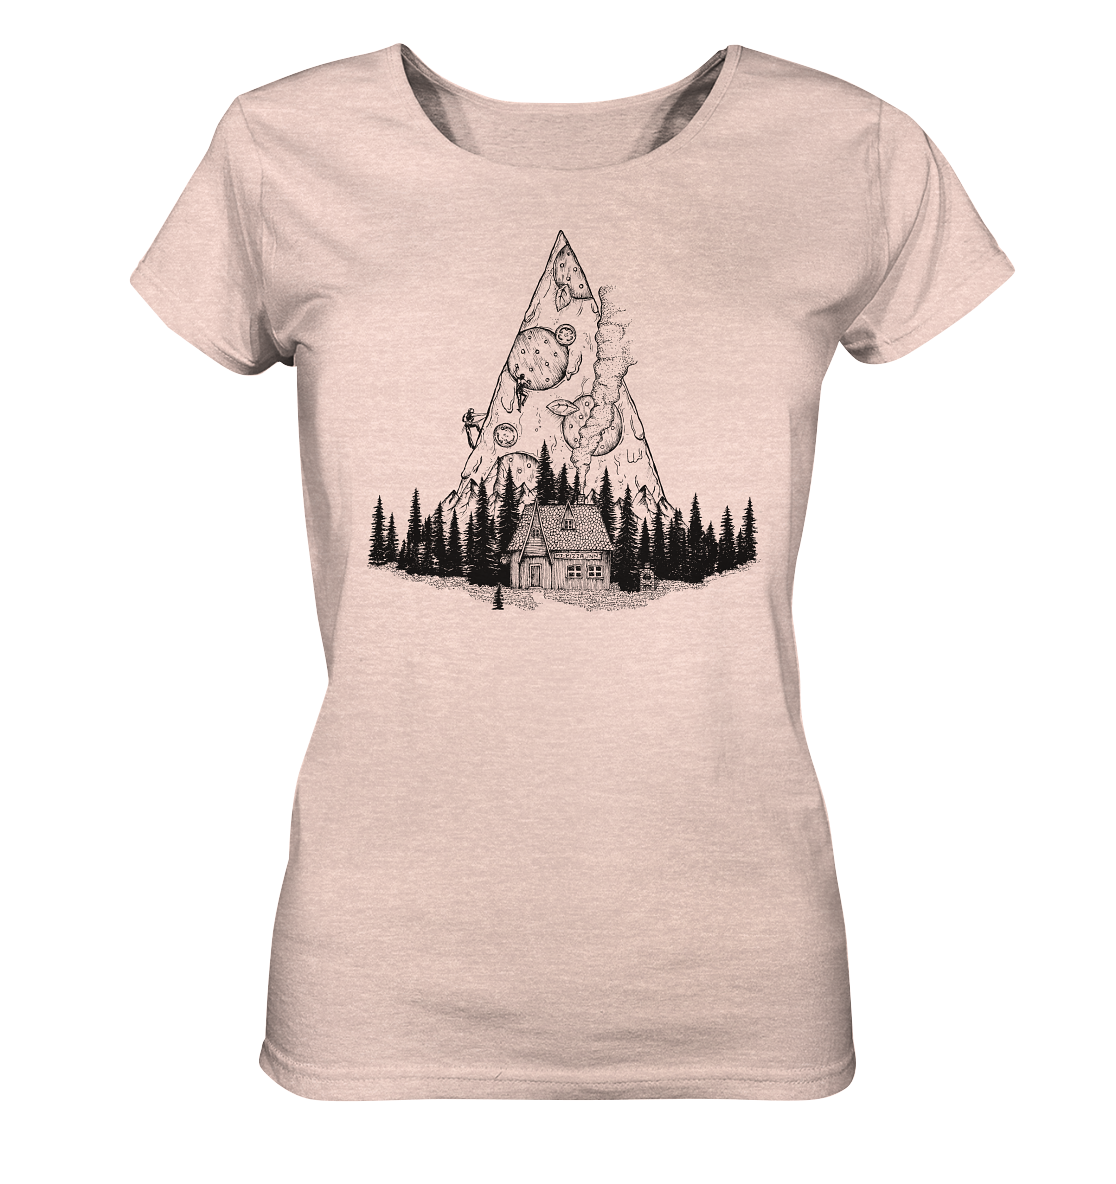 front-ladies-organic-shirt-meliert-ffded6-1116x-6.png